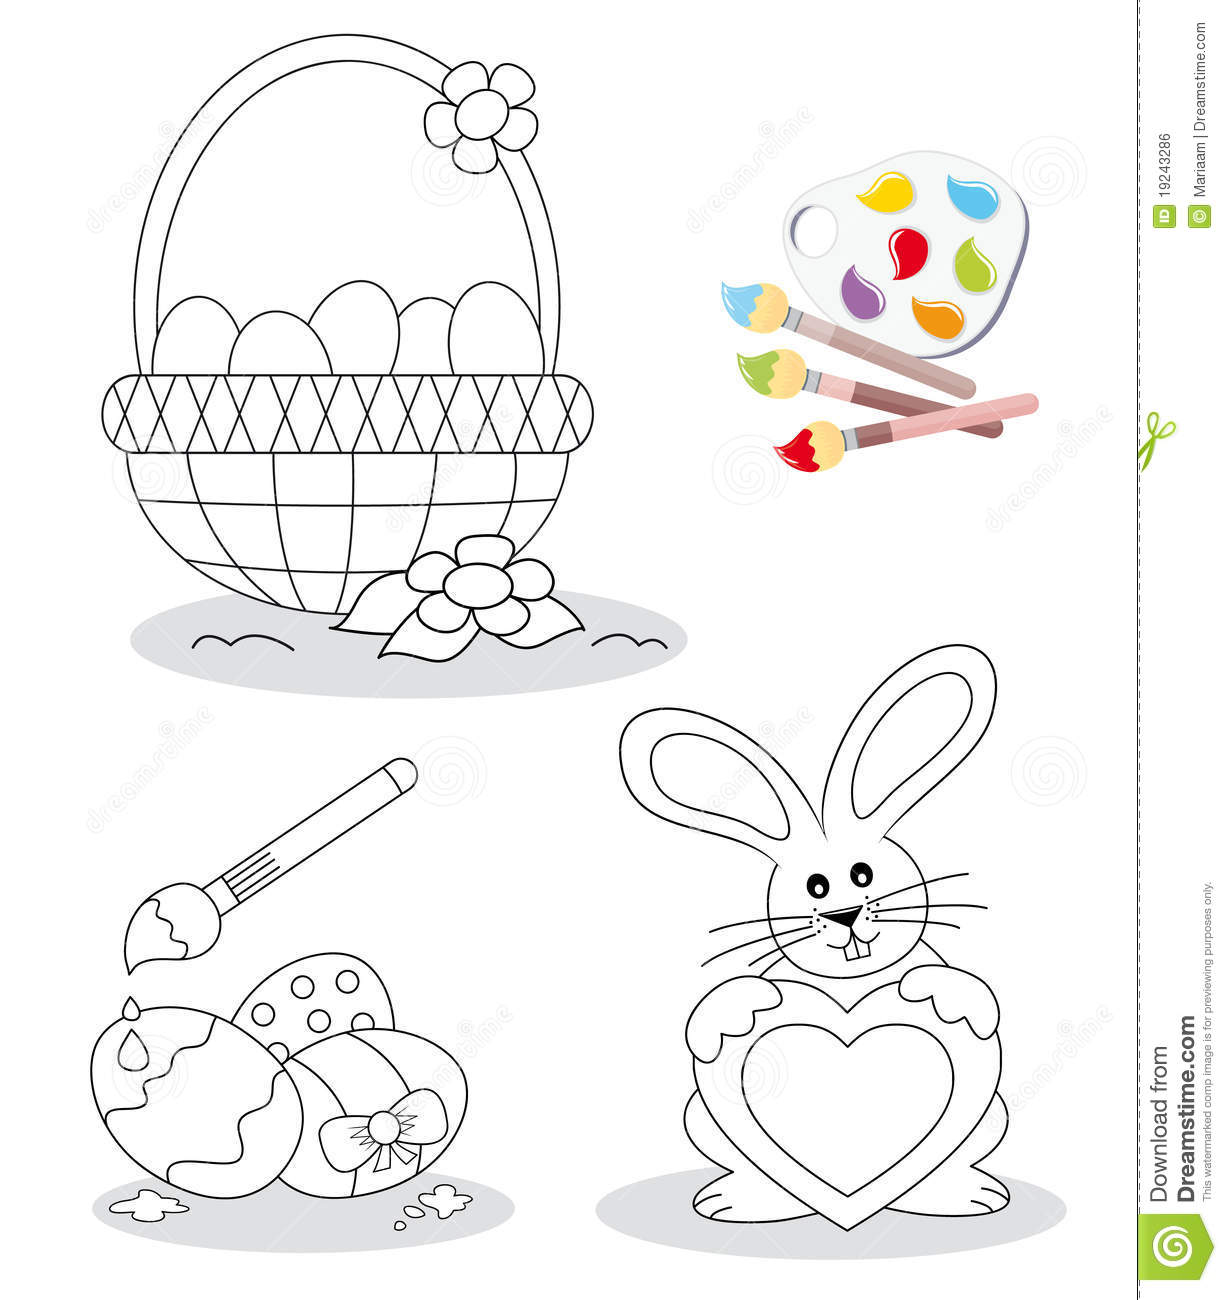 Happy easter coloring book sketches with a basket full of eggs, three ...